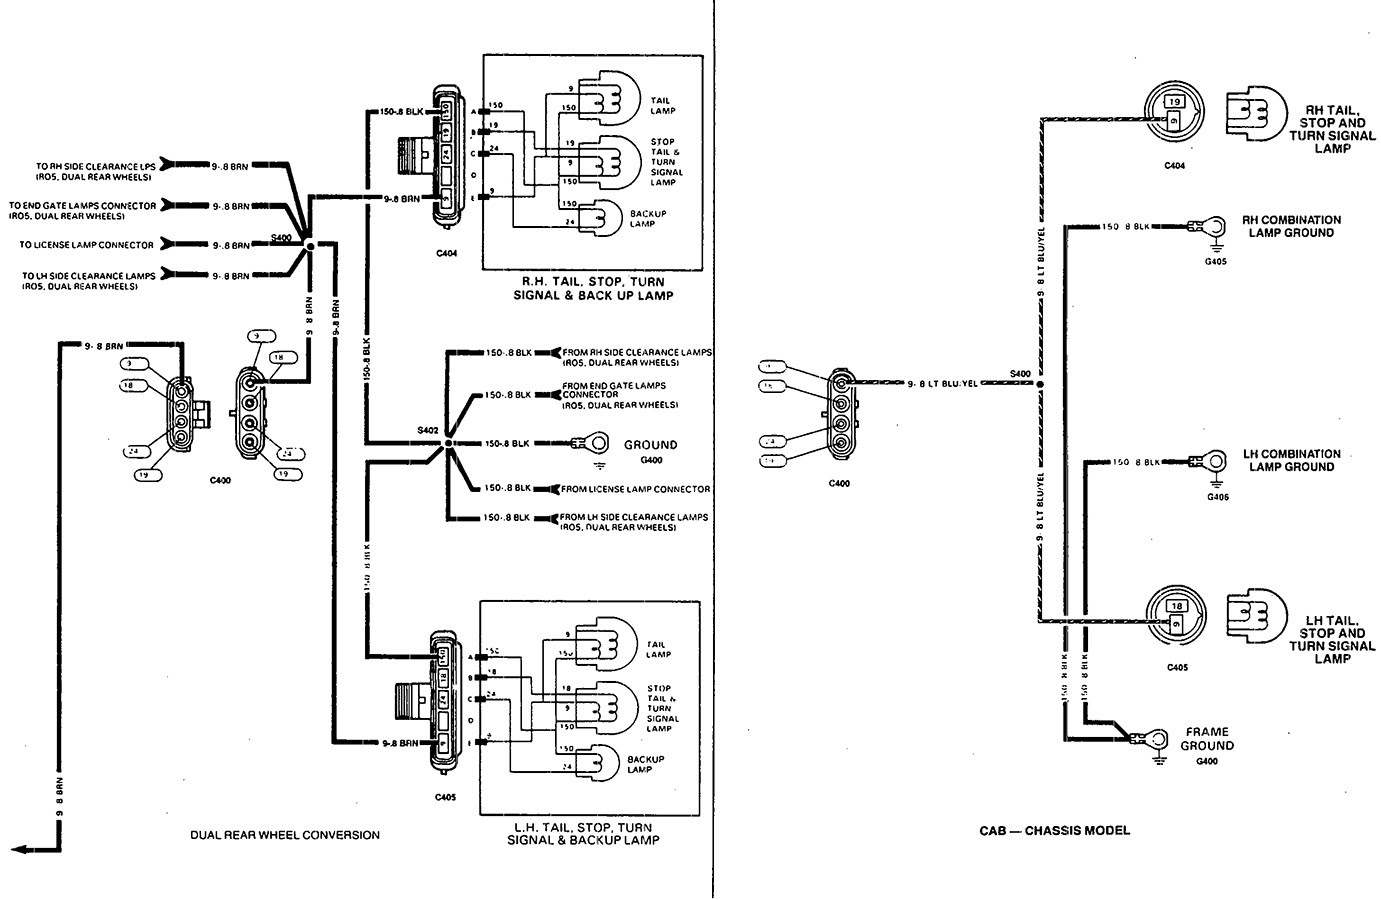 Chevy Silverado Tail Light Wiring Diagram - Wiring Diagramcars-trucks24.blogspot.com